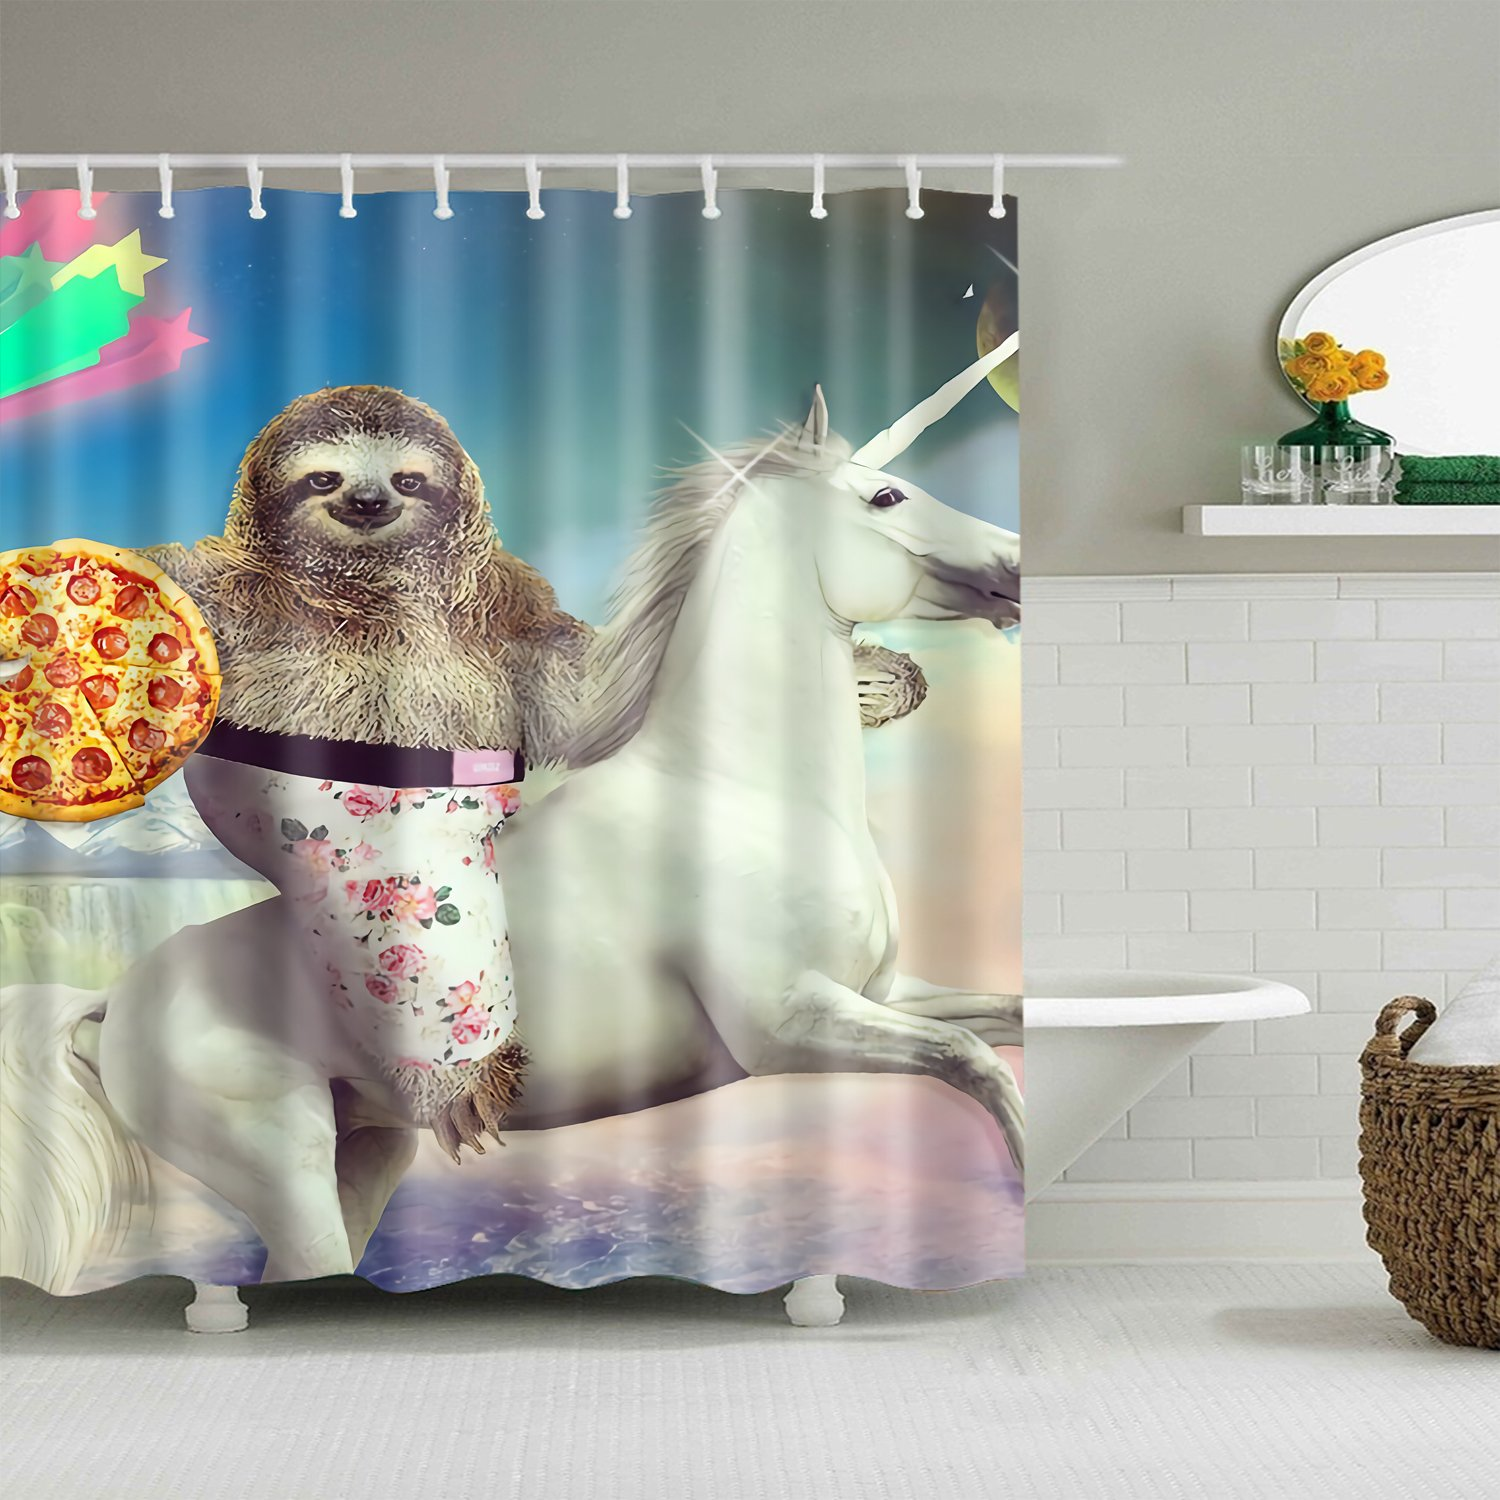 sloth pattern shower curtain fabric